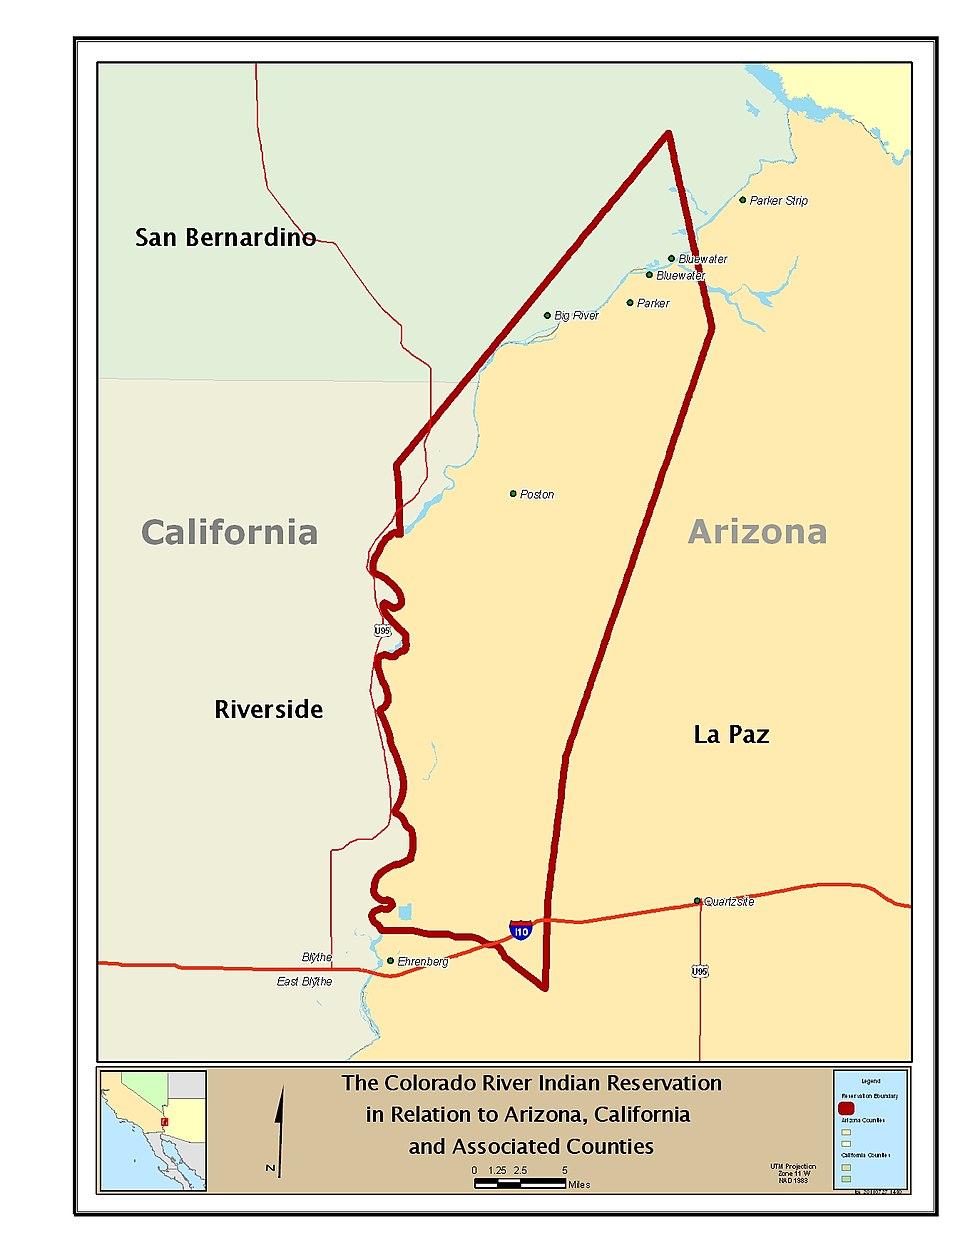 The Colorado River Indian Reservation in Relation to Arizona, California and Associated Counties